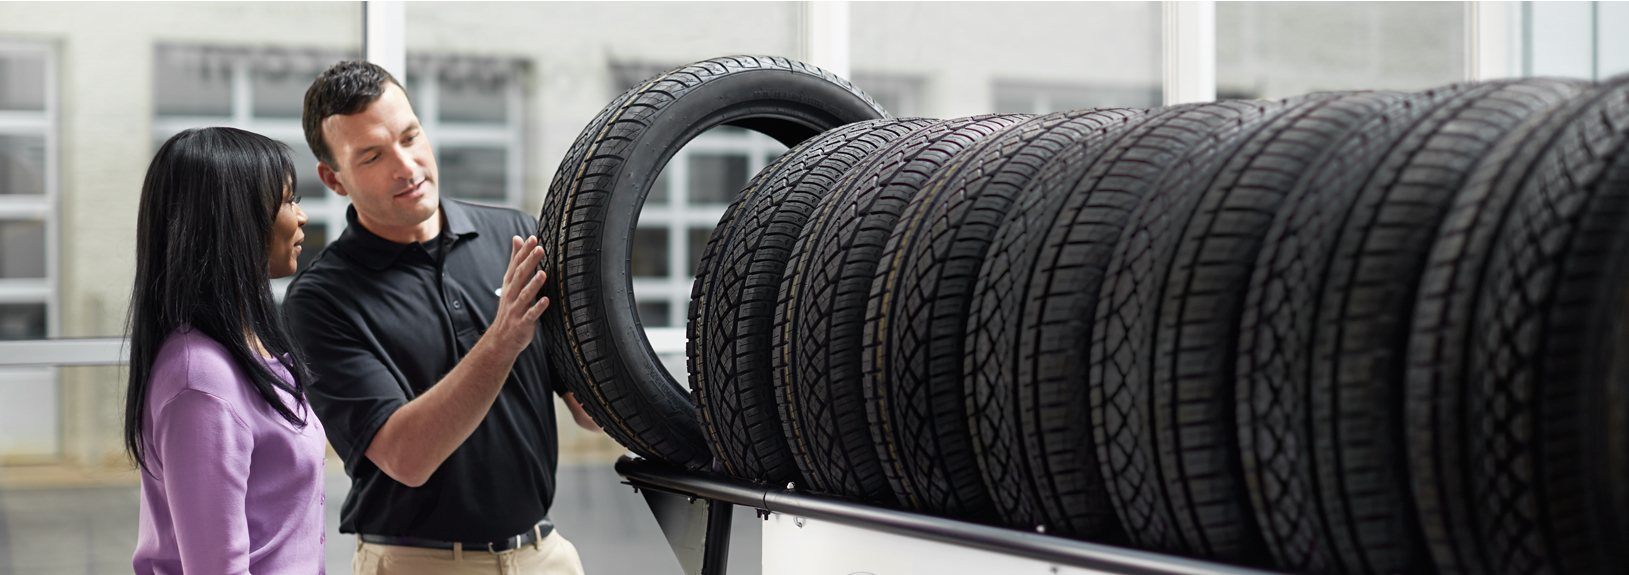 Get an Excellent Deal on New Tires for Your Snowy Winter Driving in Bay City